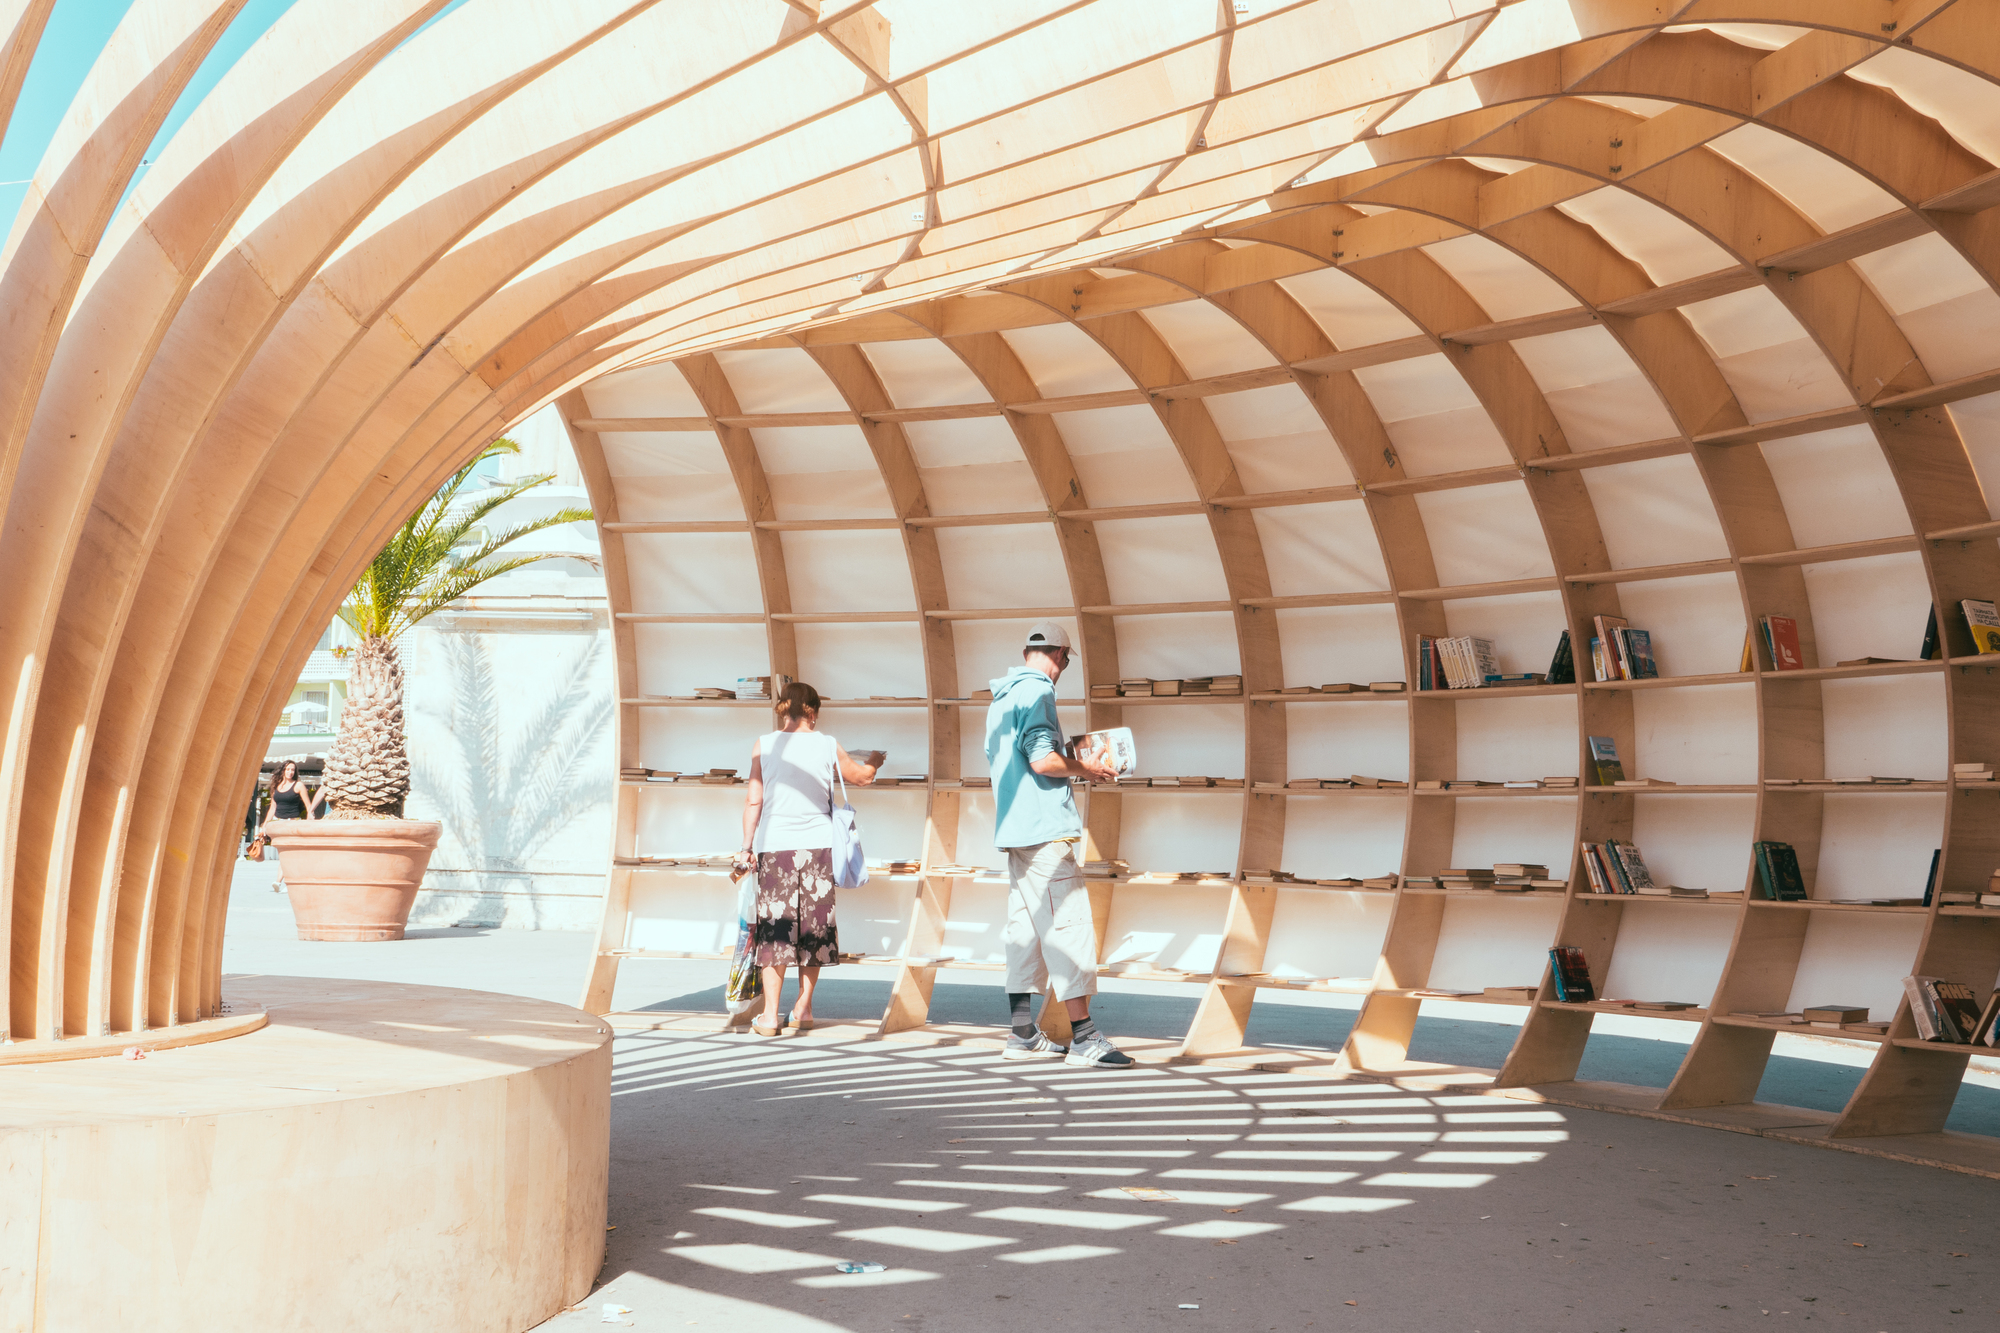 Parametric Design Helped Make This Street Library Out Of